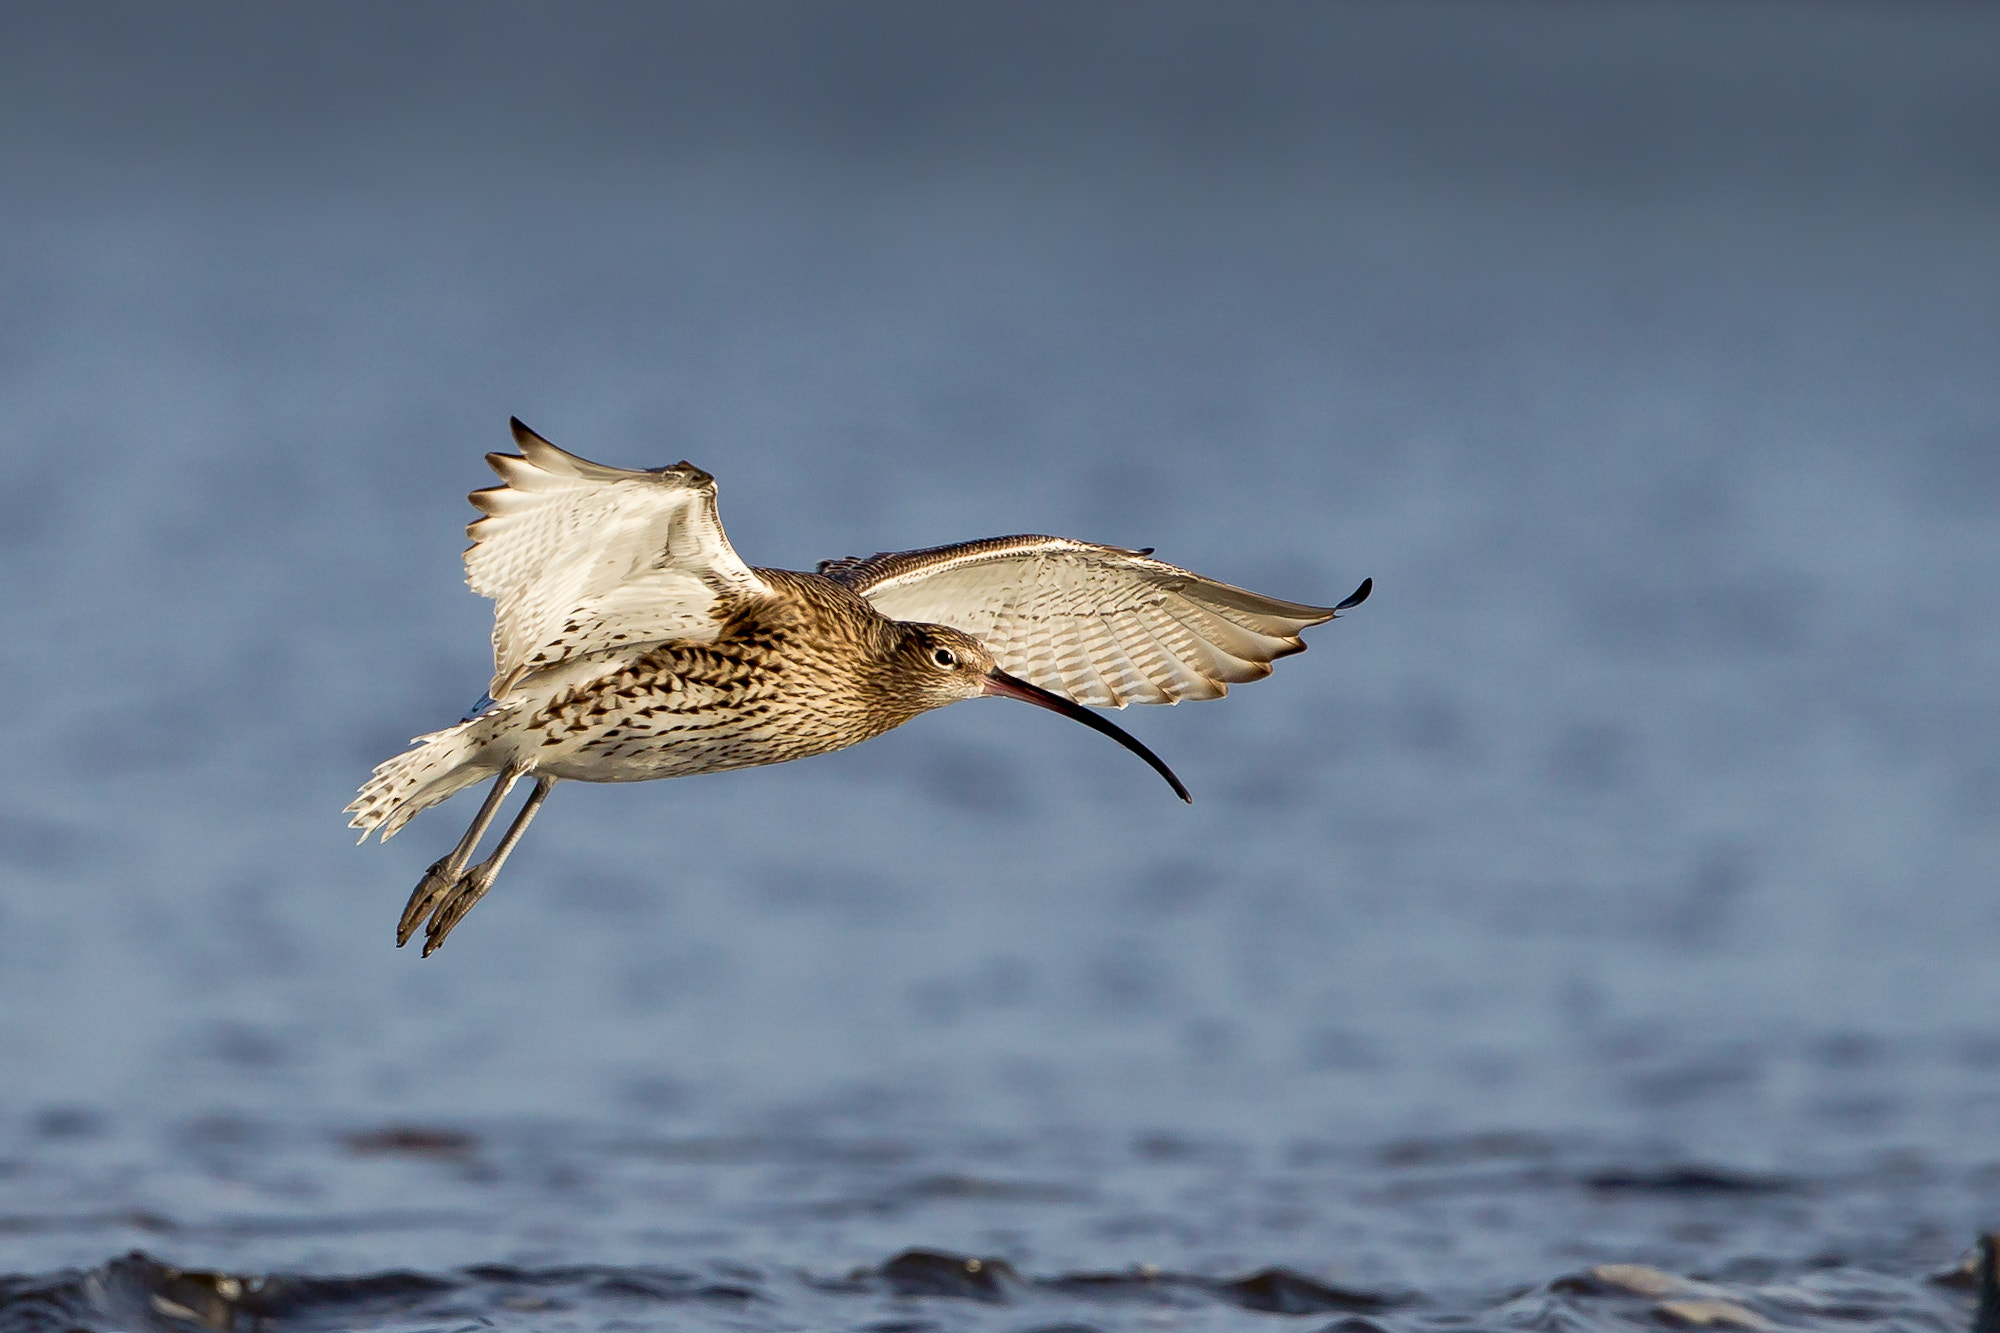 Photograph Curlew in Flight by Mark Medcalf on 500px